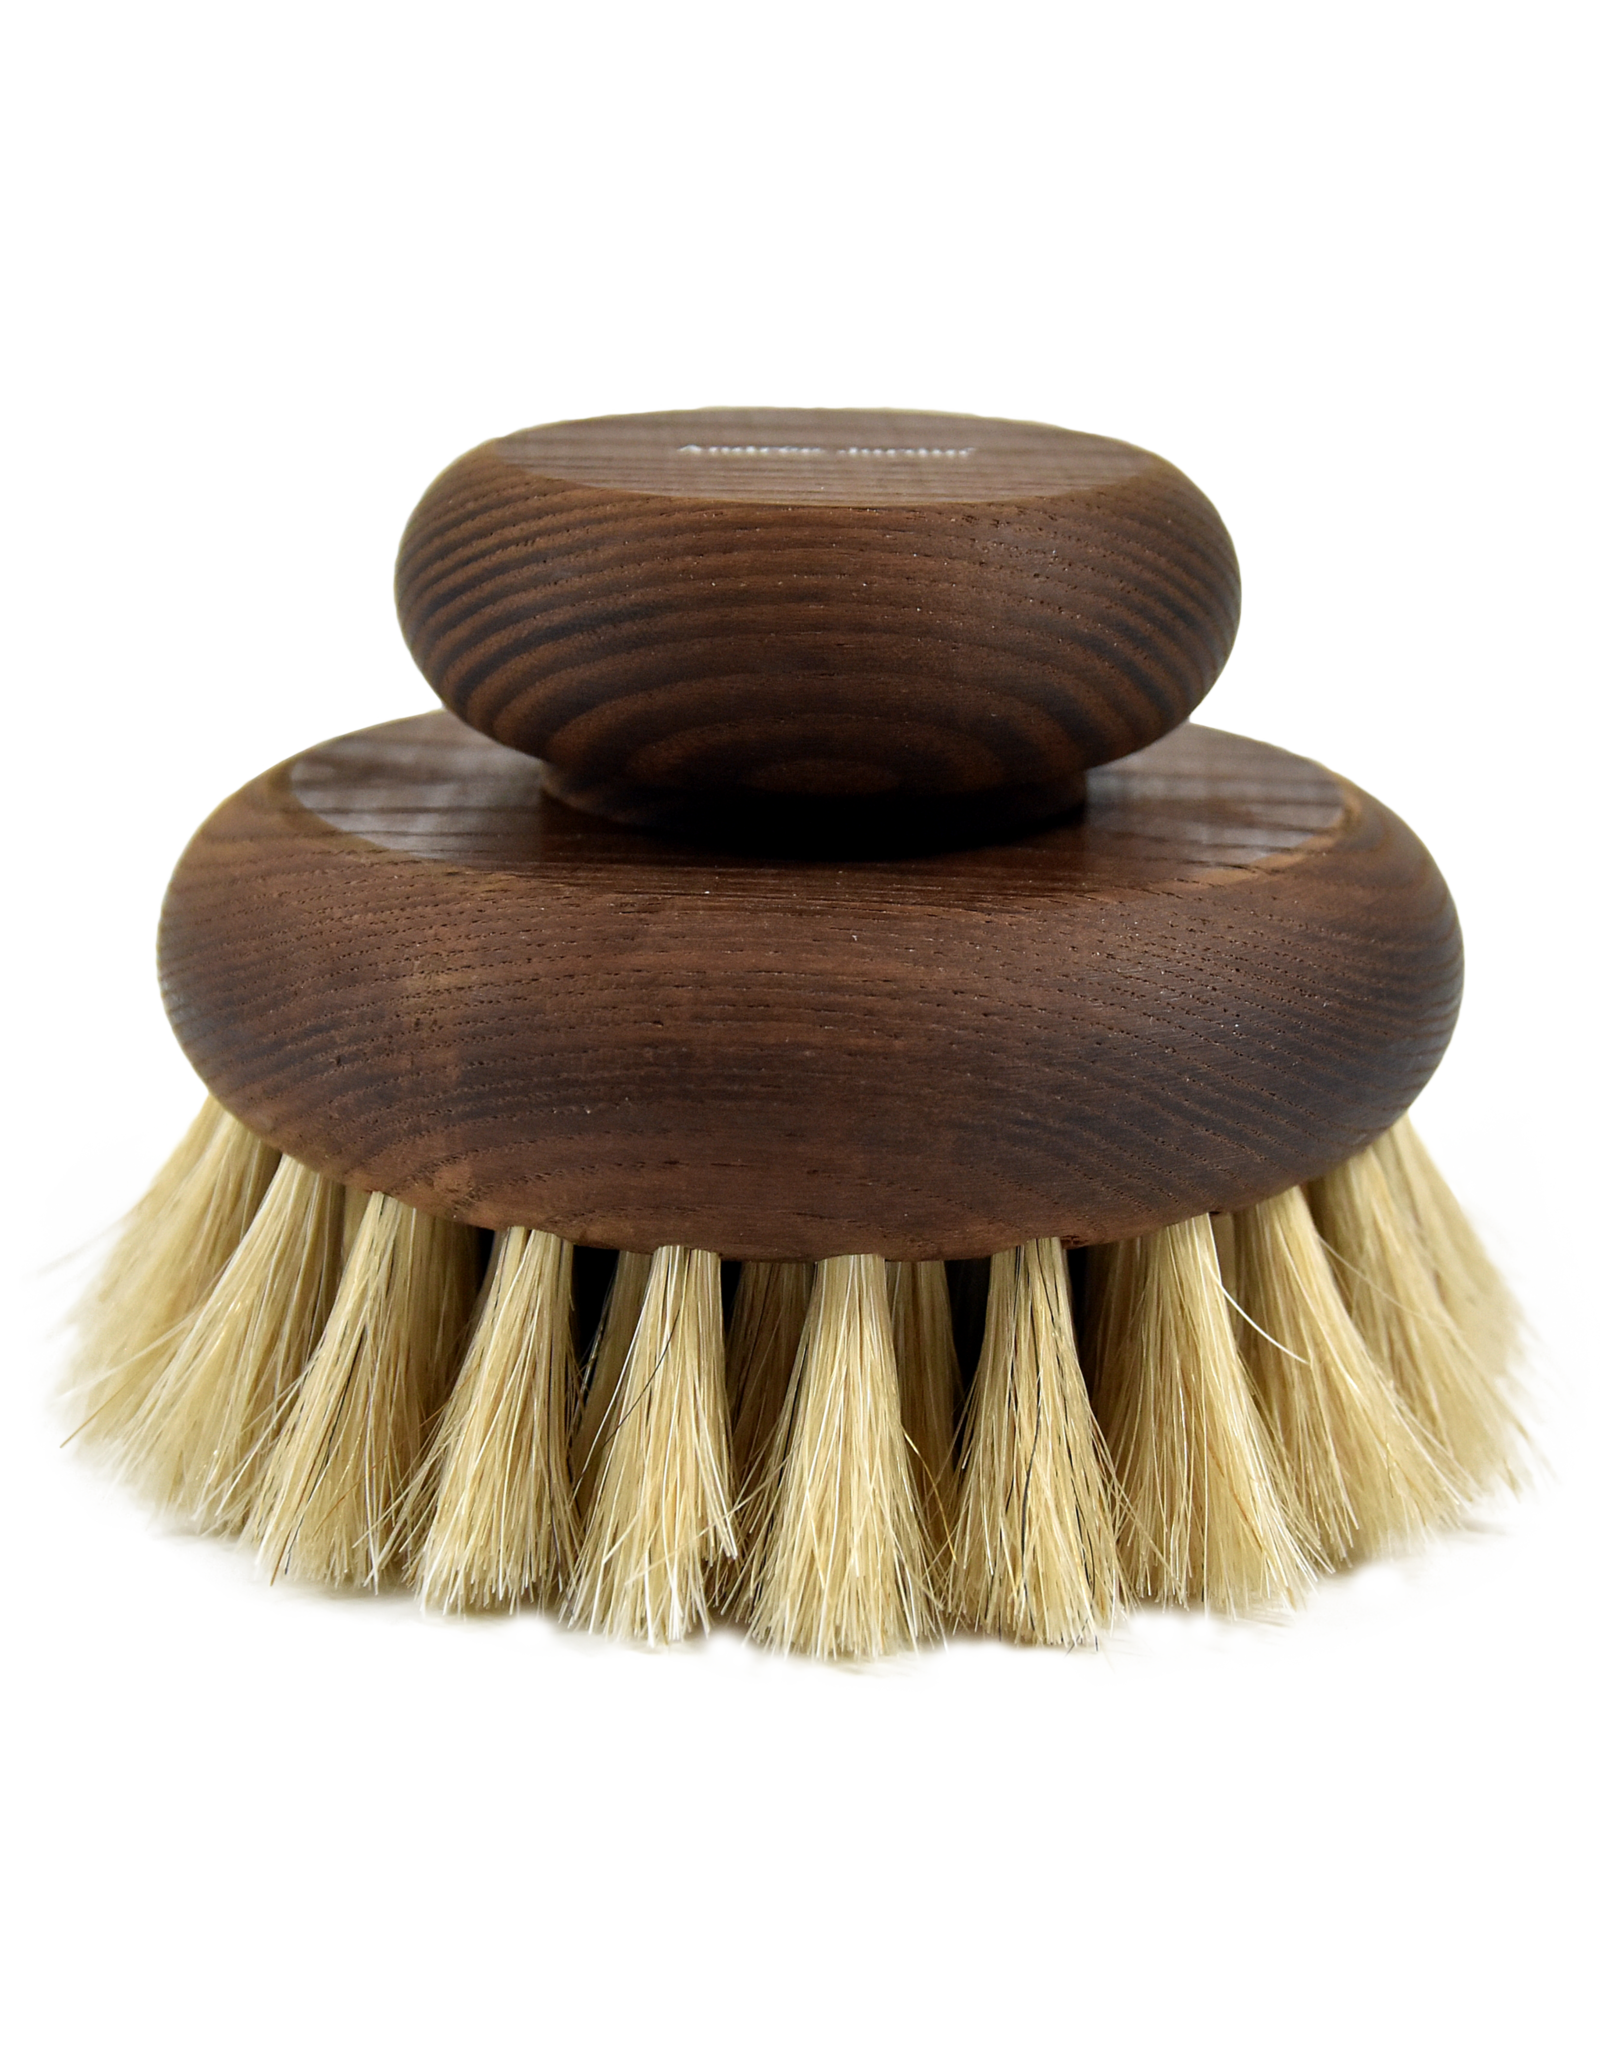 grote Body brush - Heritage